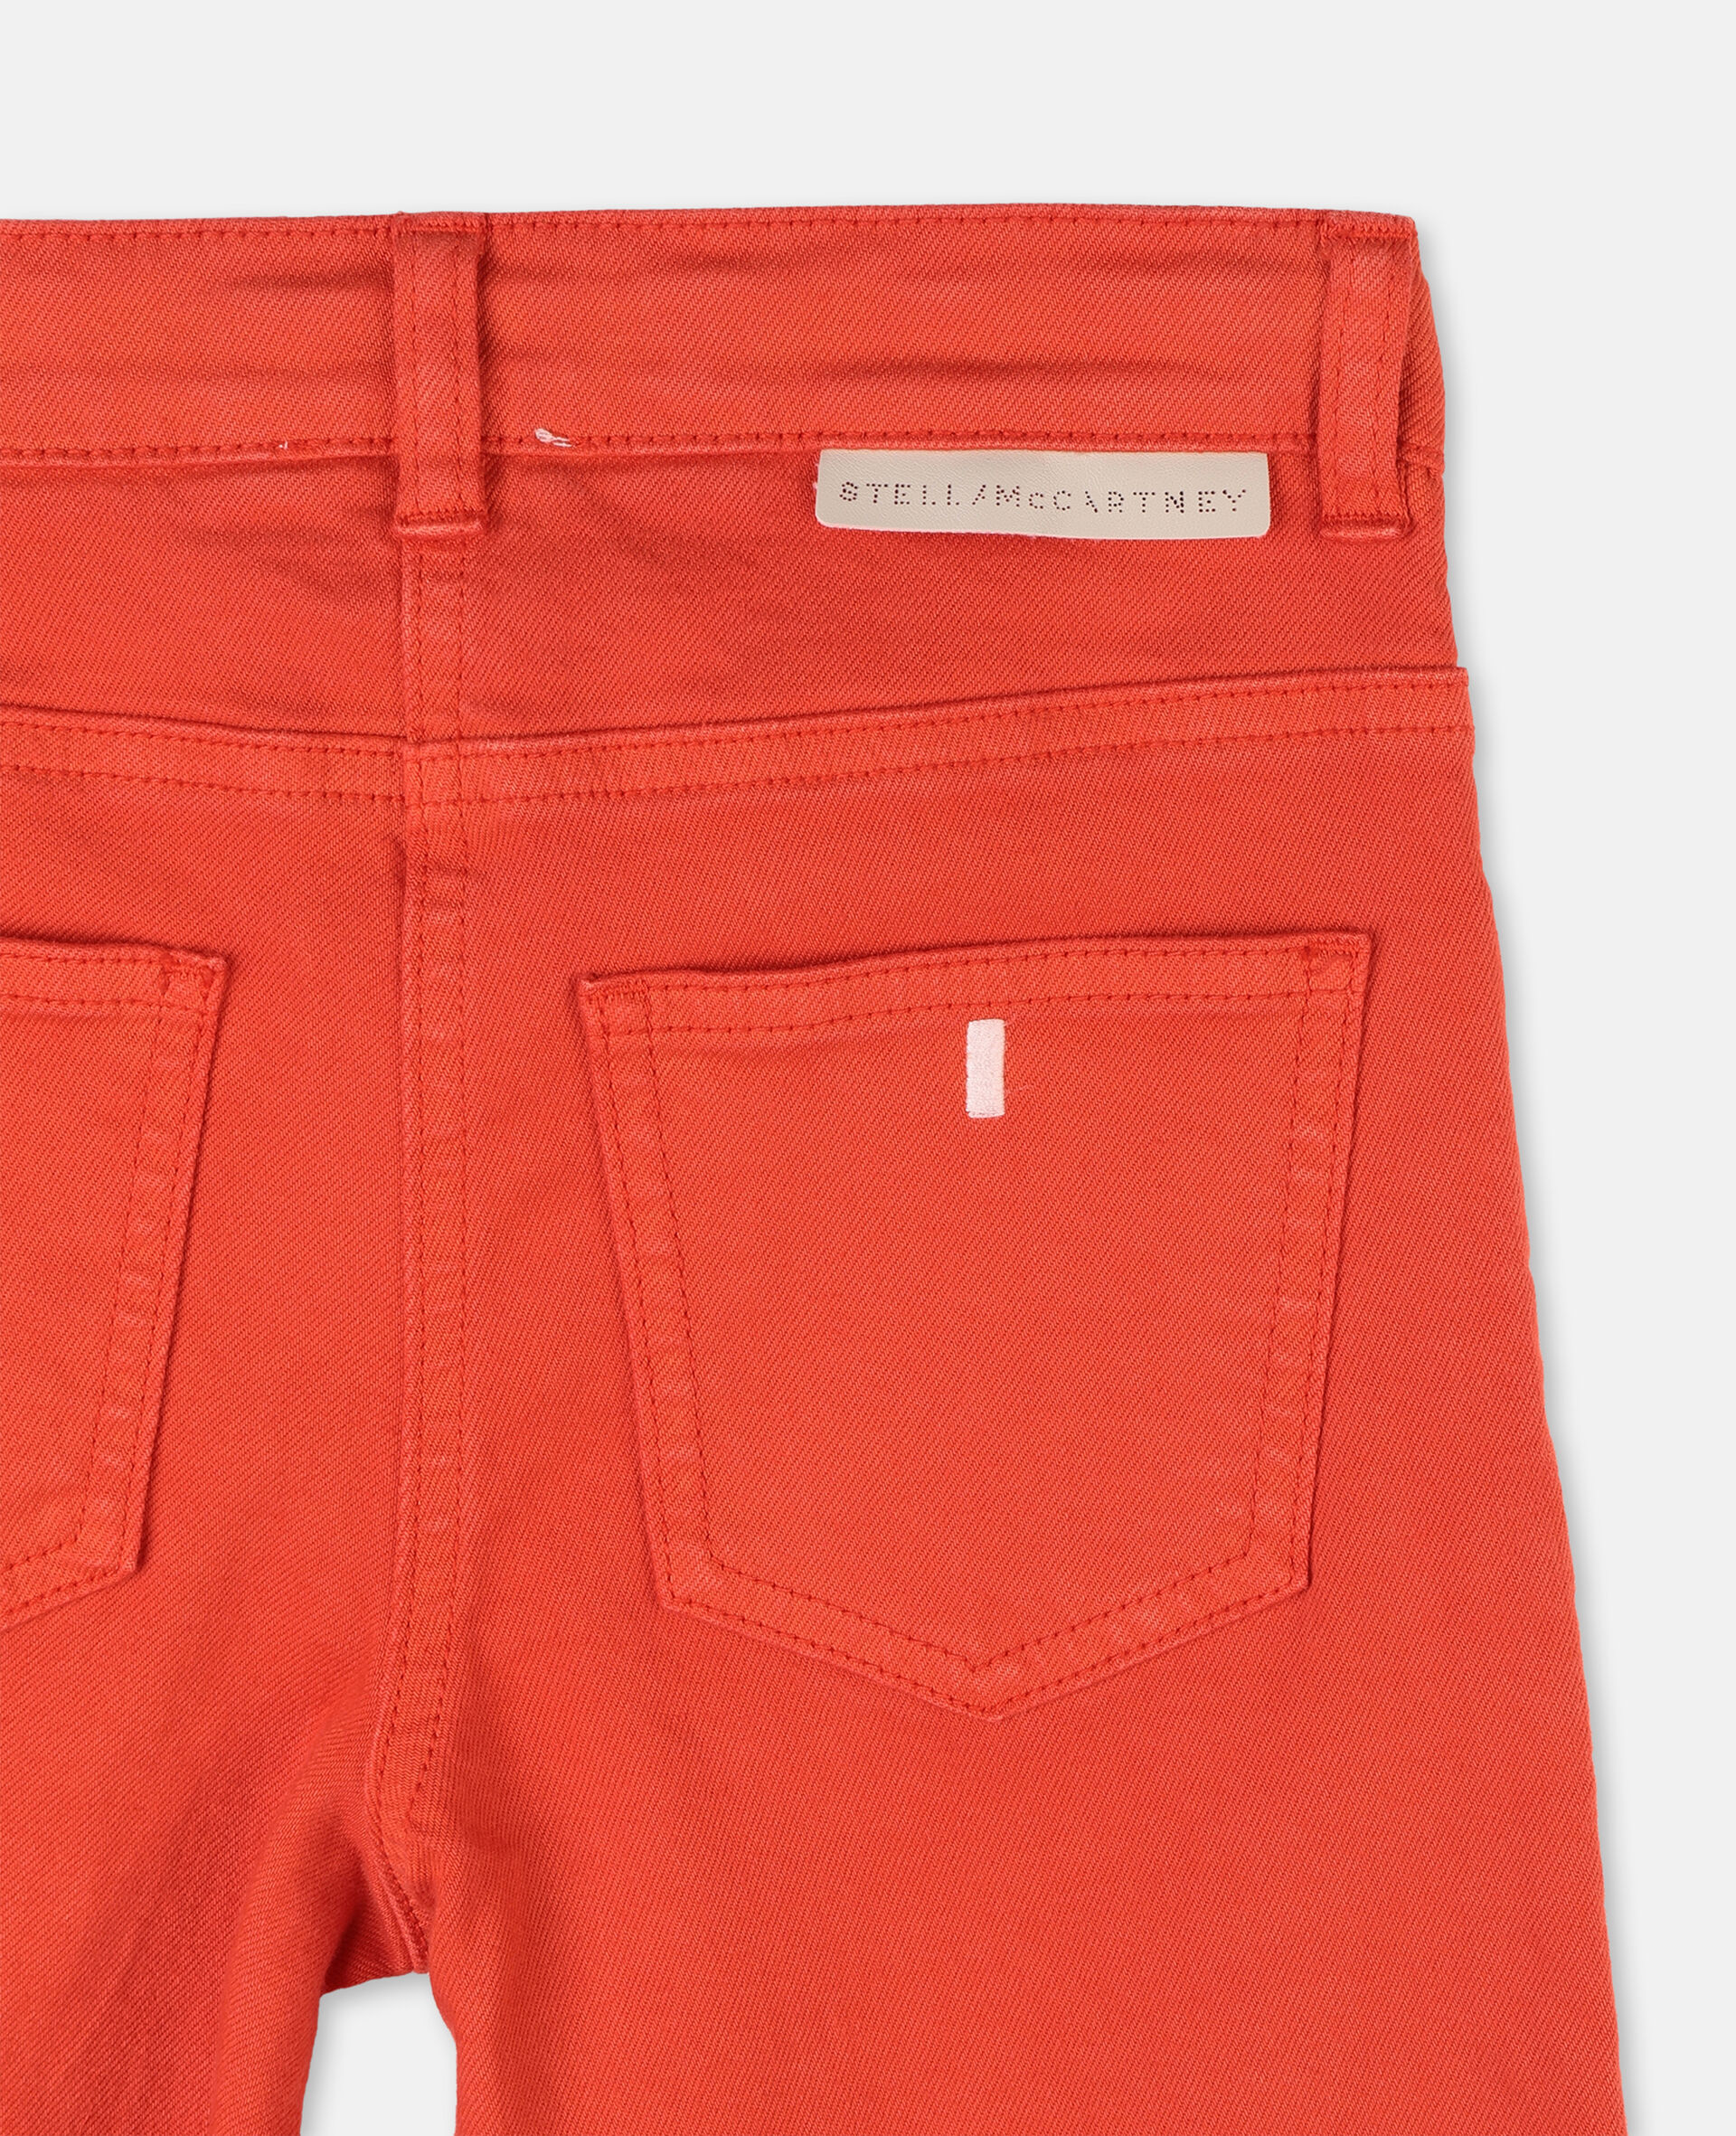 Cotton Denim Trousers-Red-large image number 1